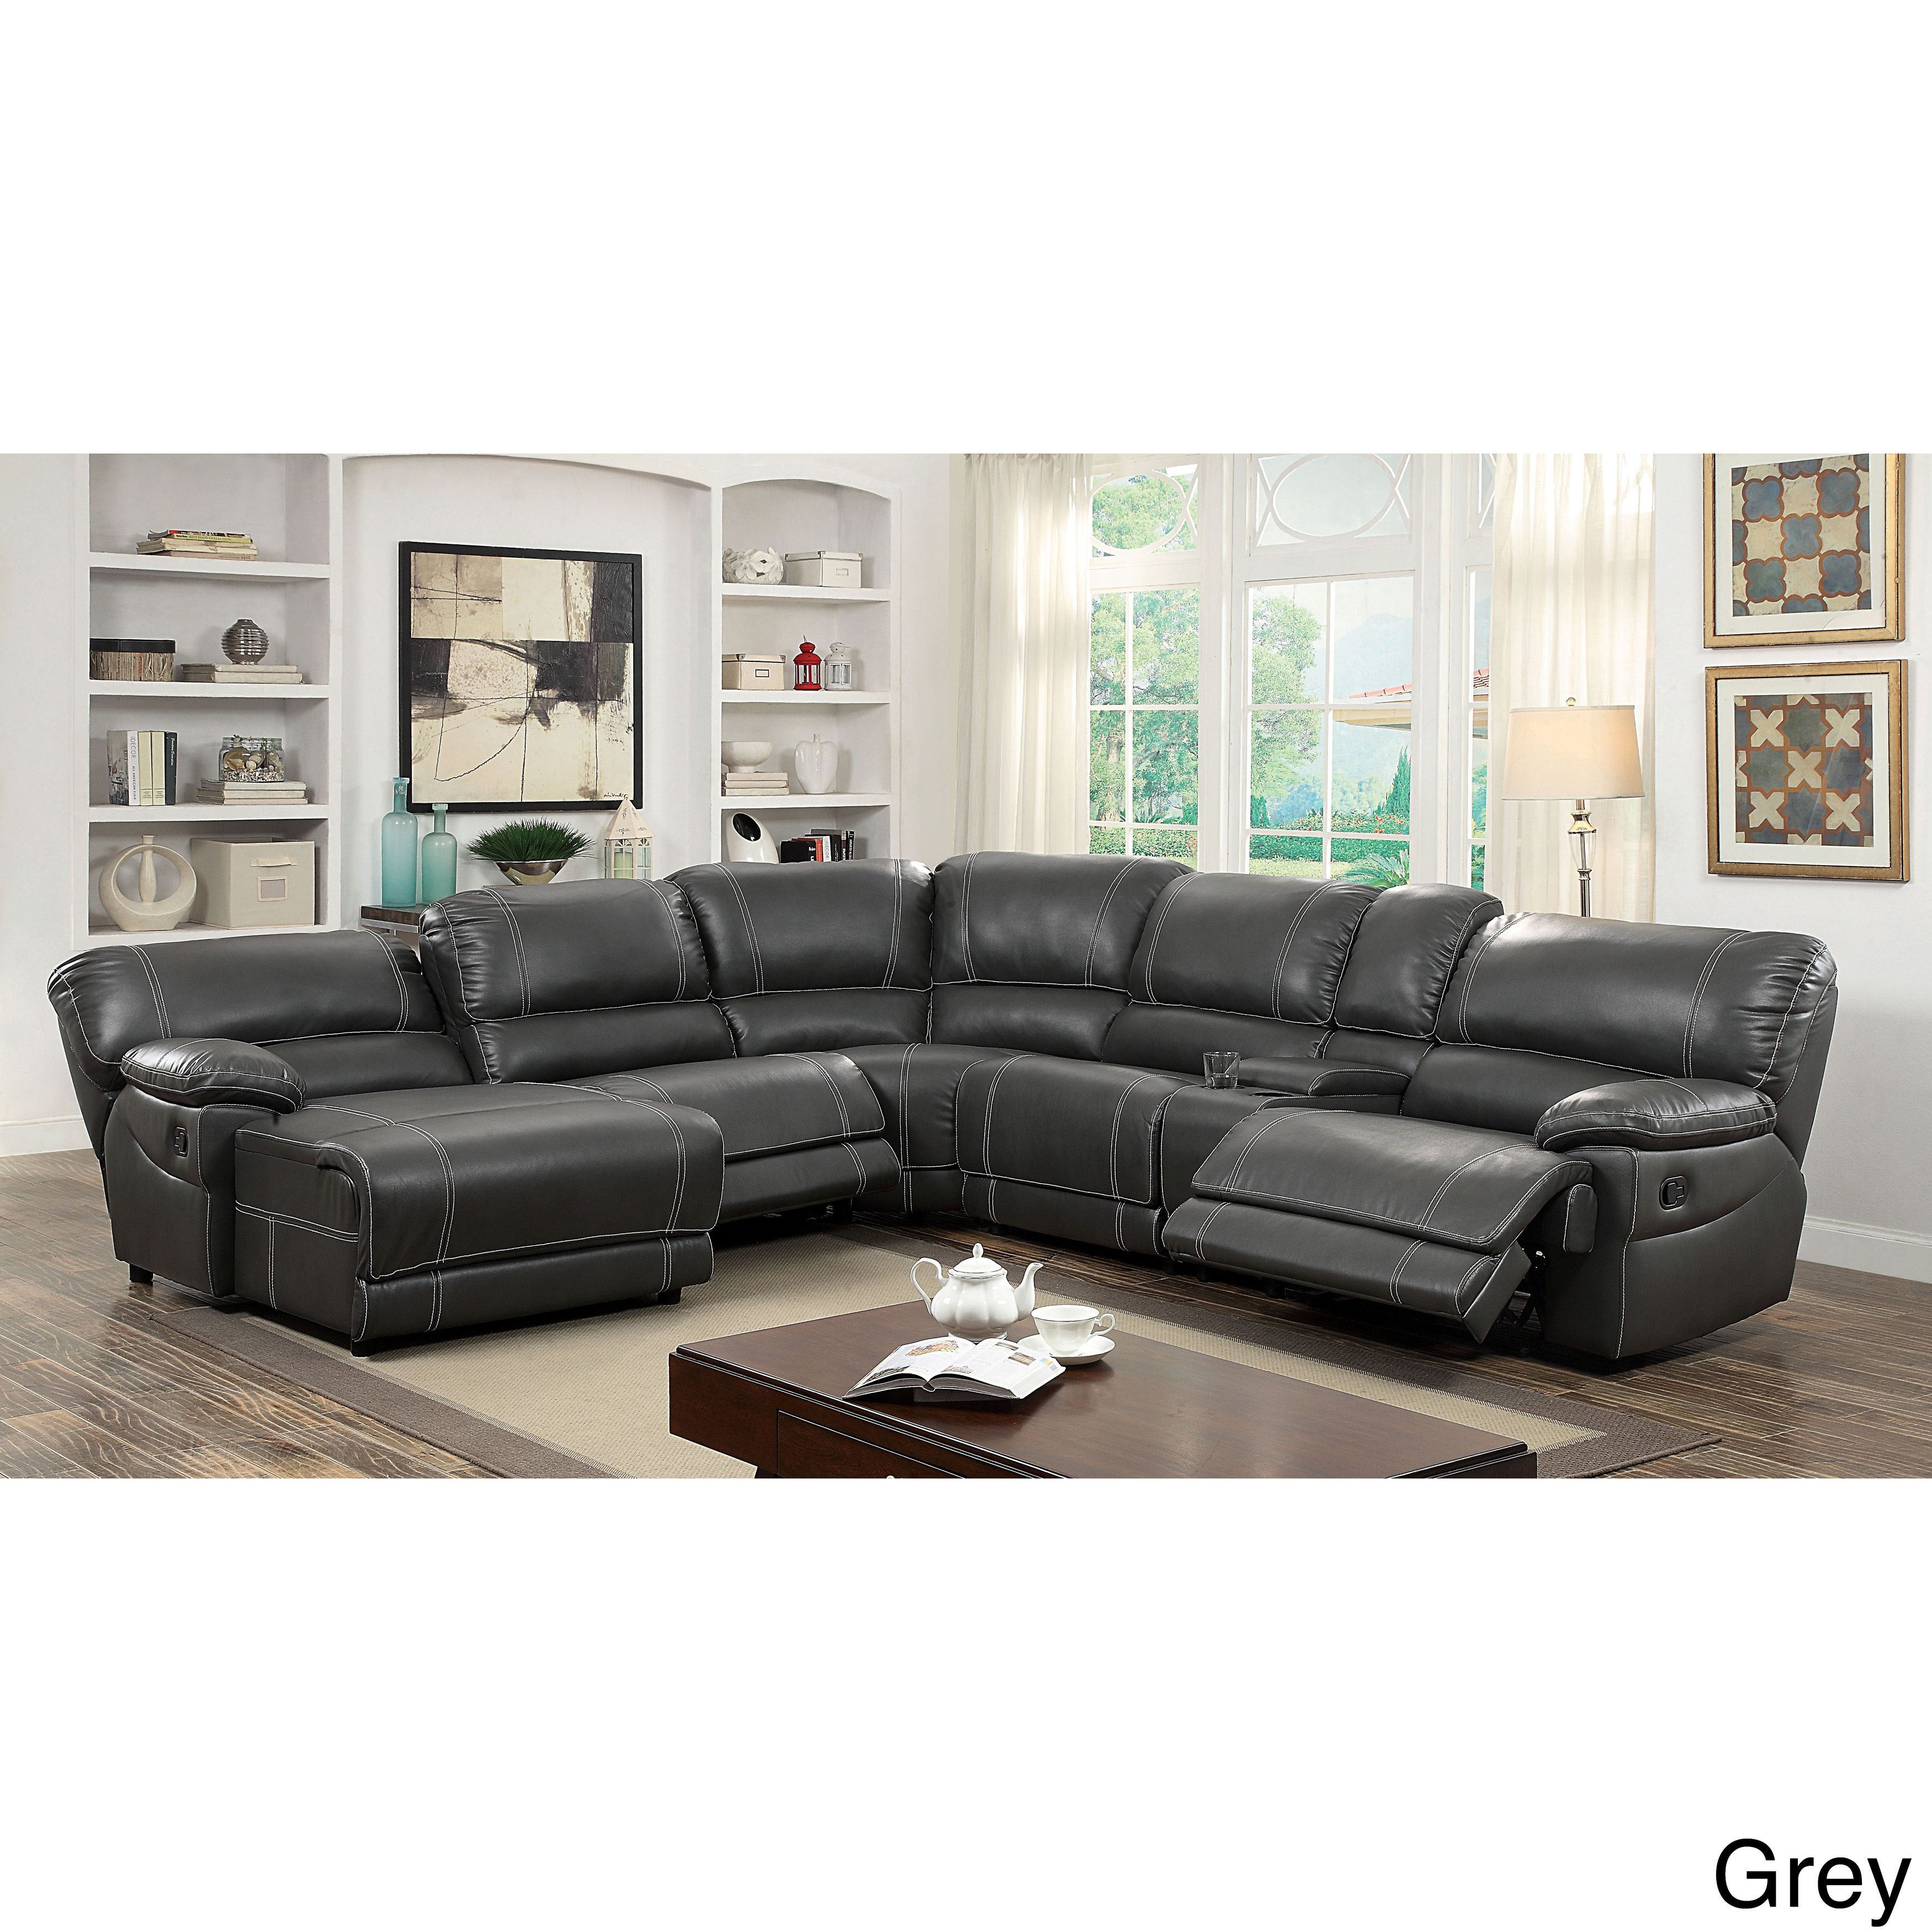 new l shaped sectional sofa in black leatherette With l shaped sectional sofa in black leatherette